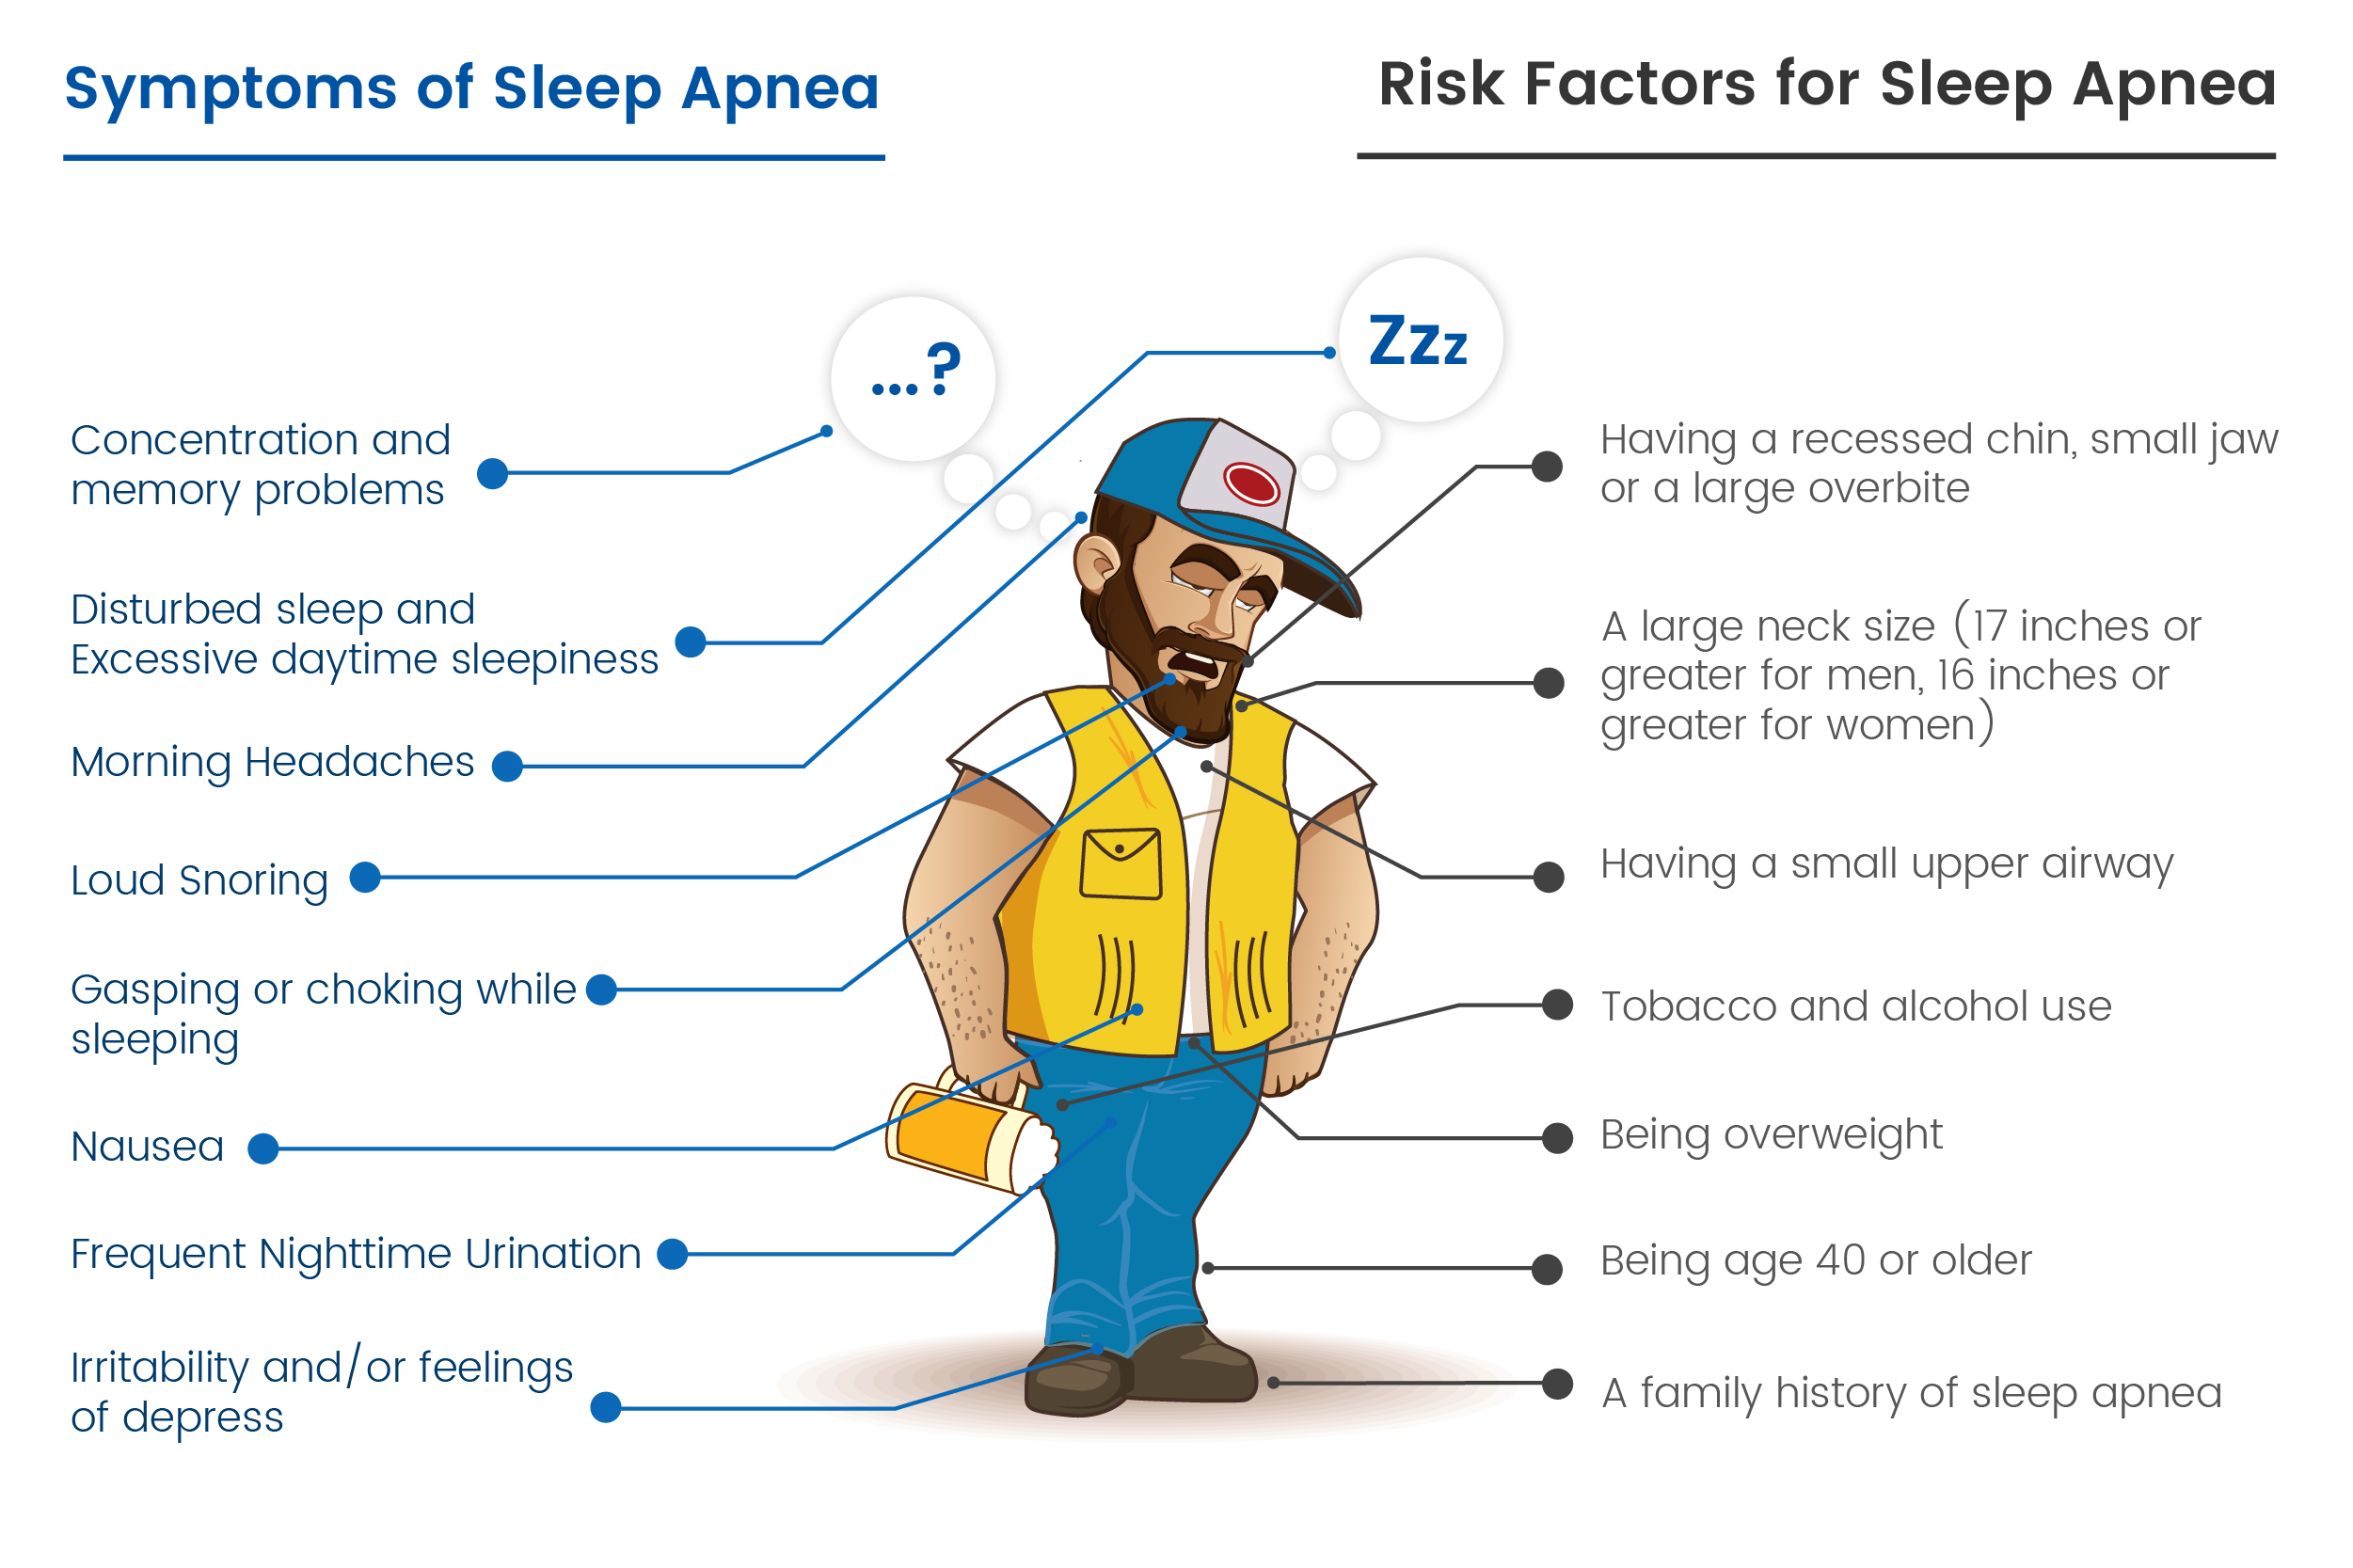 Symptoms and Risks of Sleep Apnea